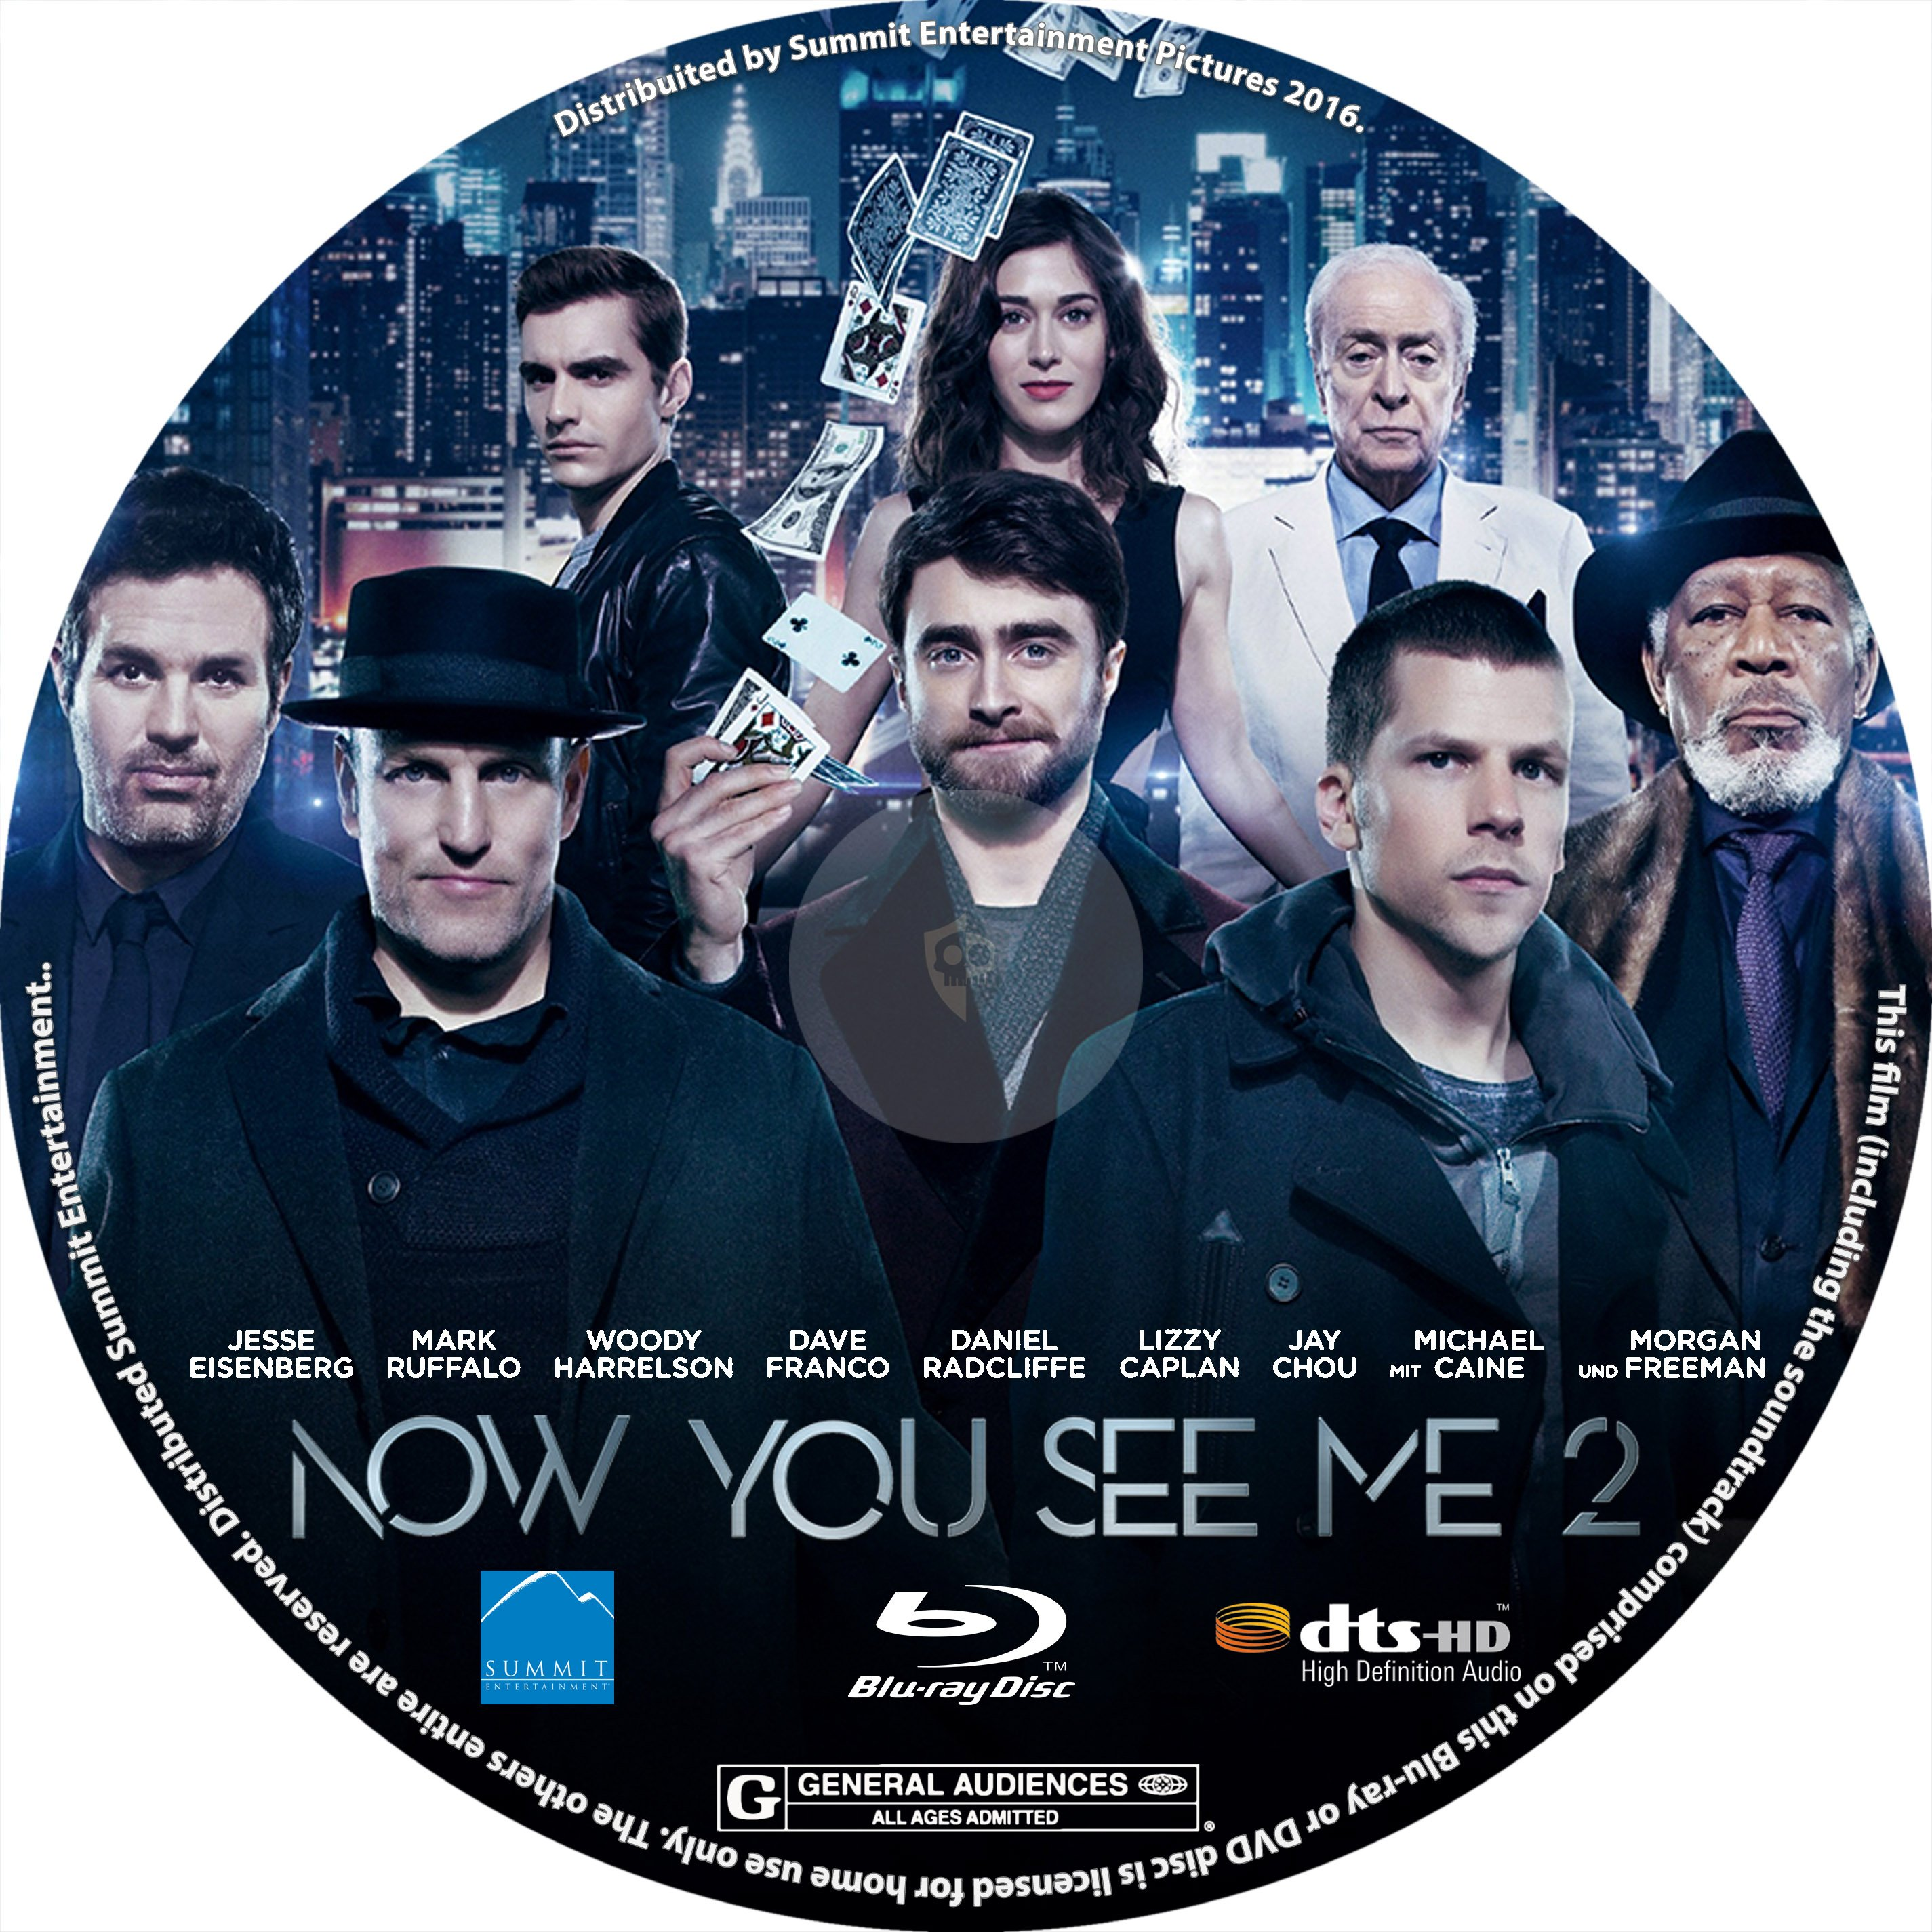 Now You See Me 2 2016 R1 Blu Ray Label Dvd Covers And Labels